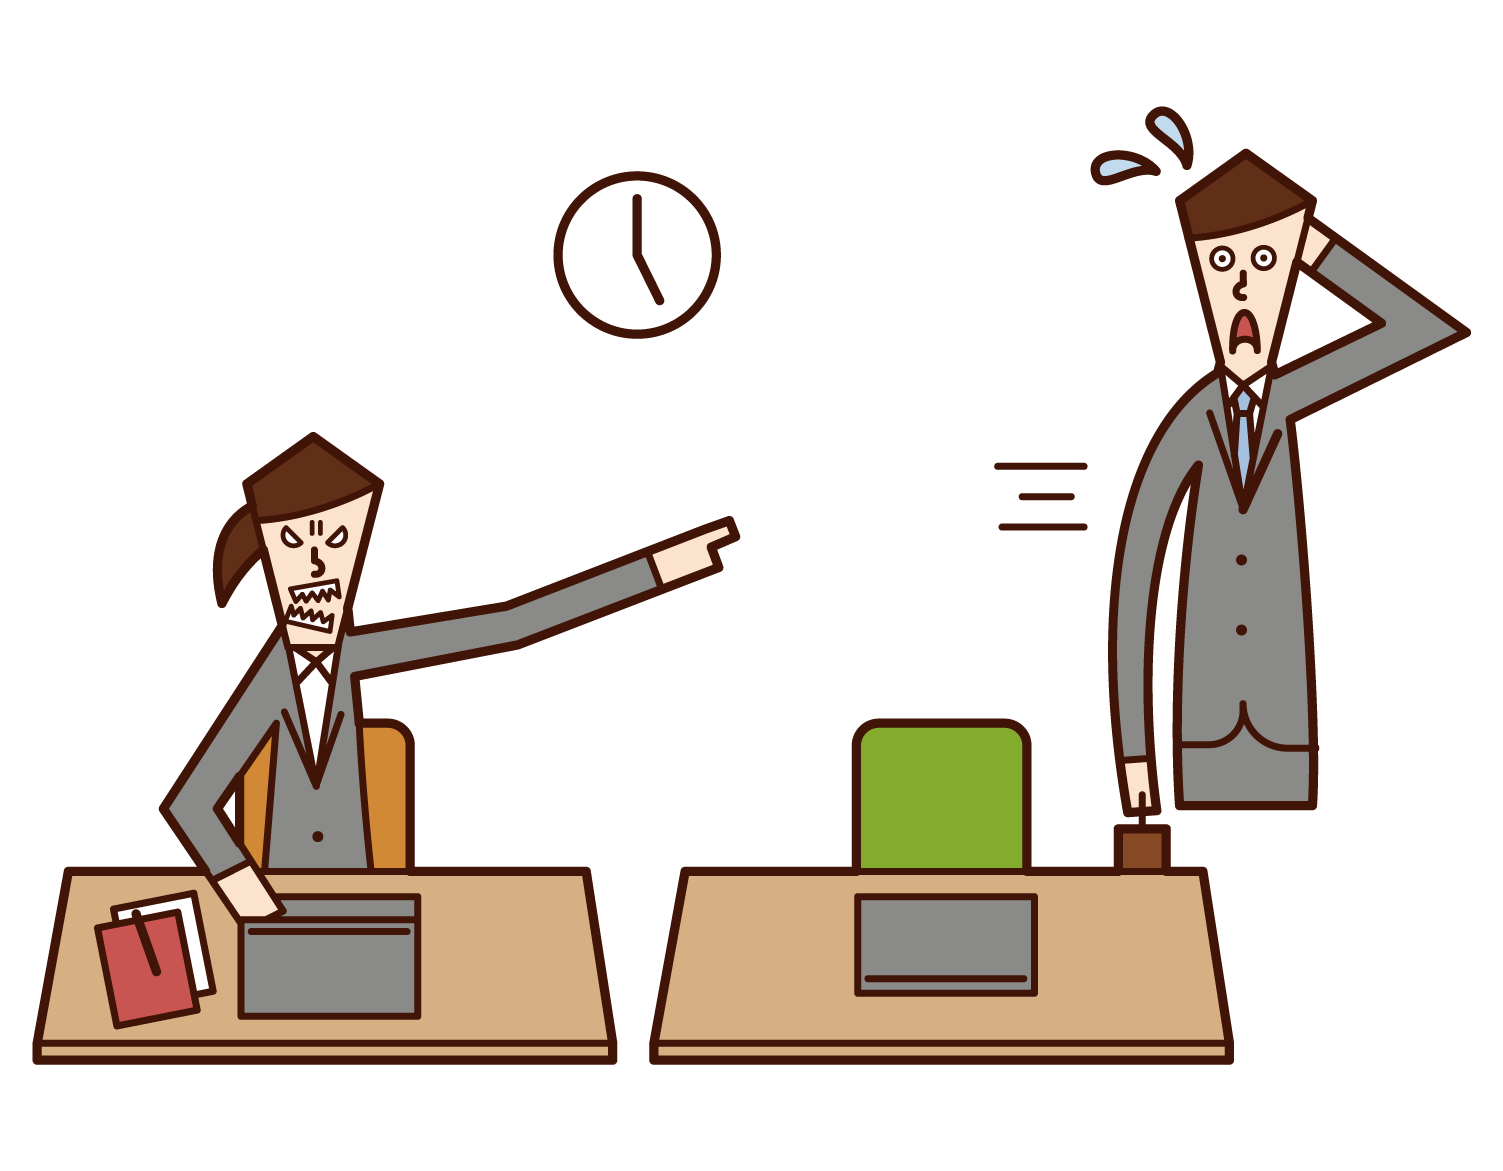 Illustration of a person (woman) forcing overtime work